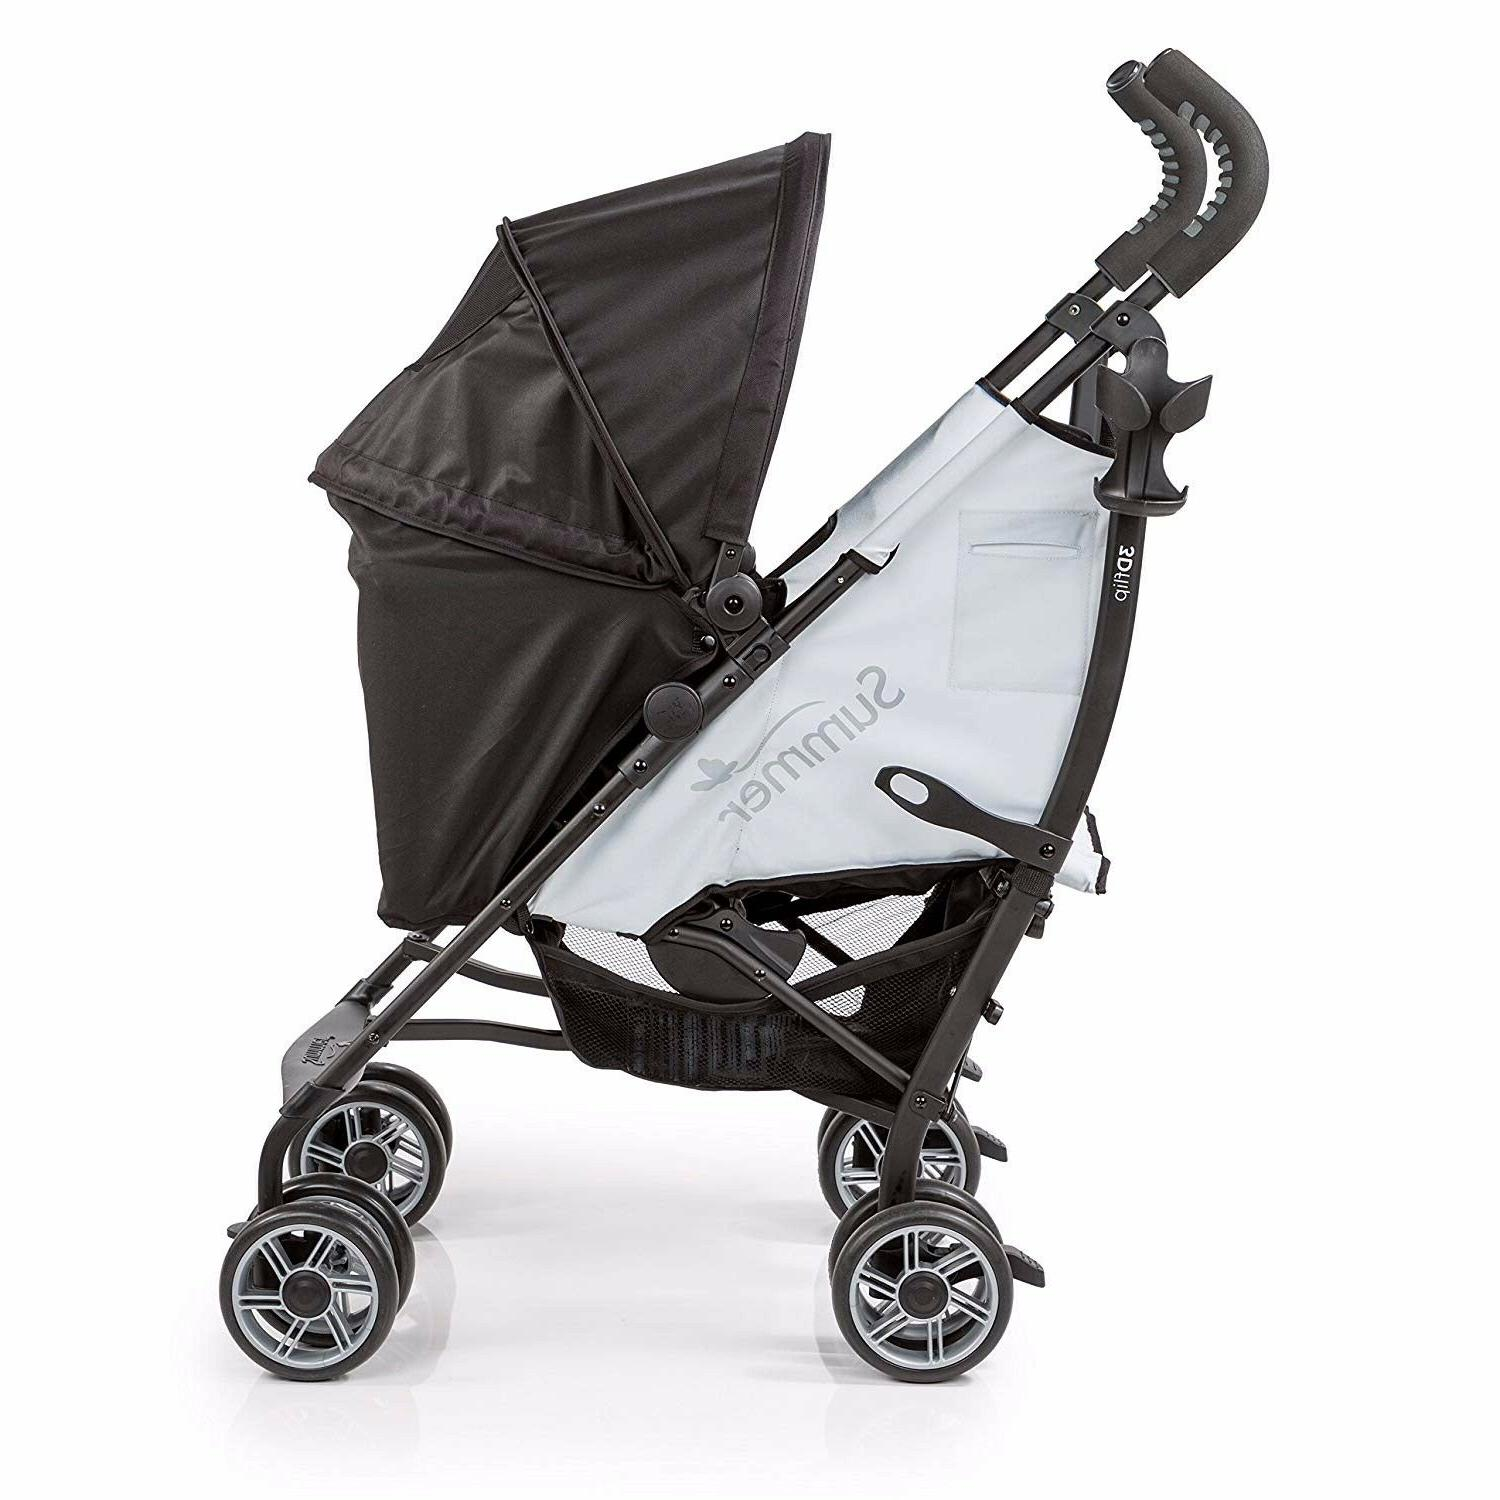 3dflip convenience stroller double take